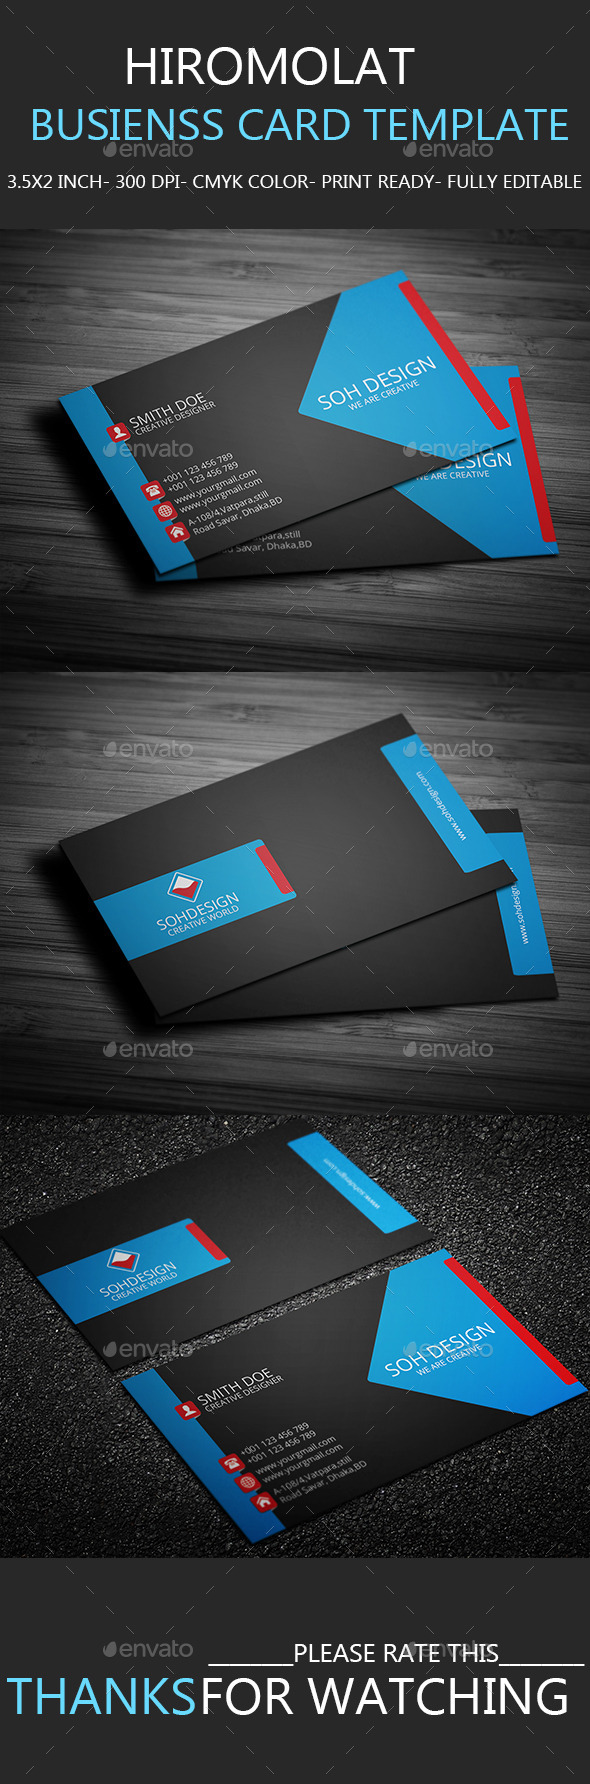 Hiromolat Business Card Template | Photoshop Action | Pinterest ...